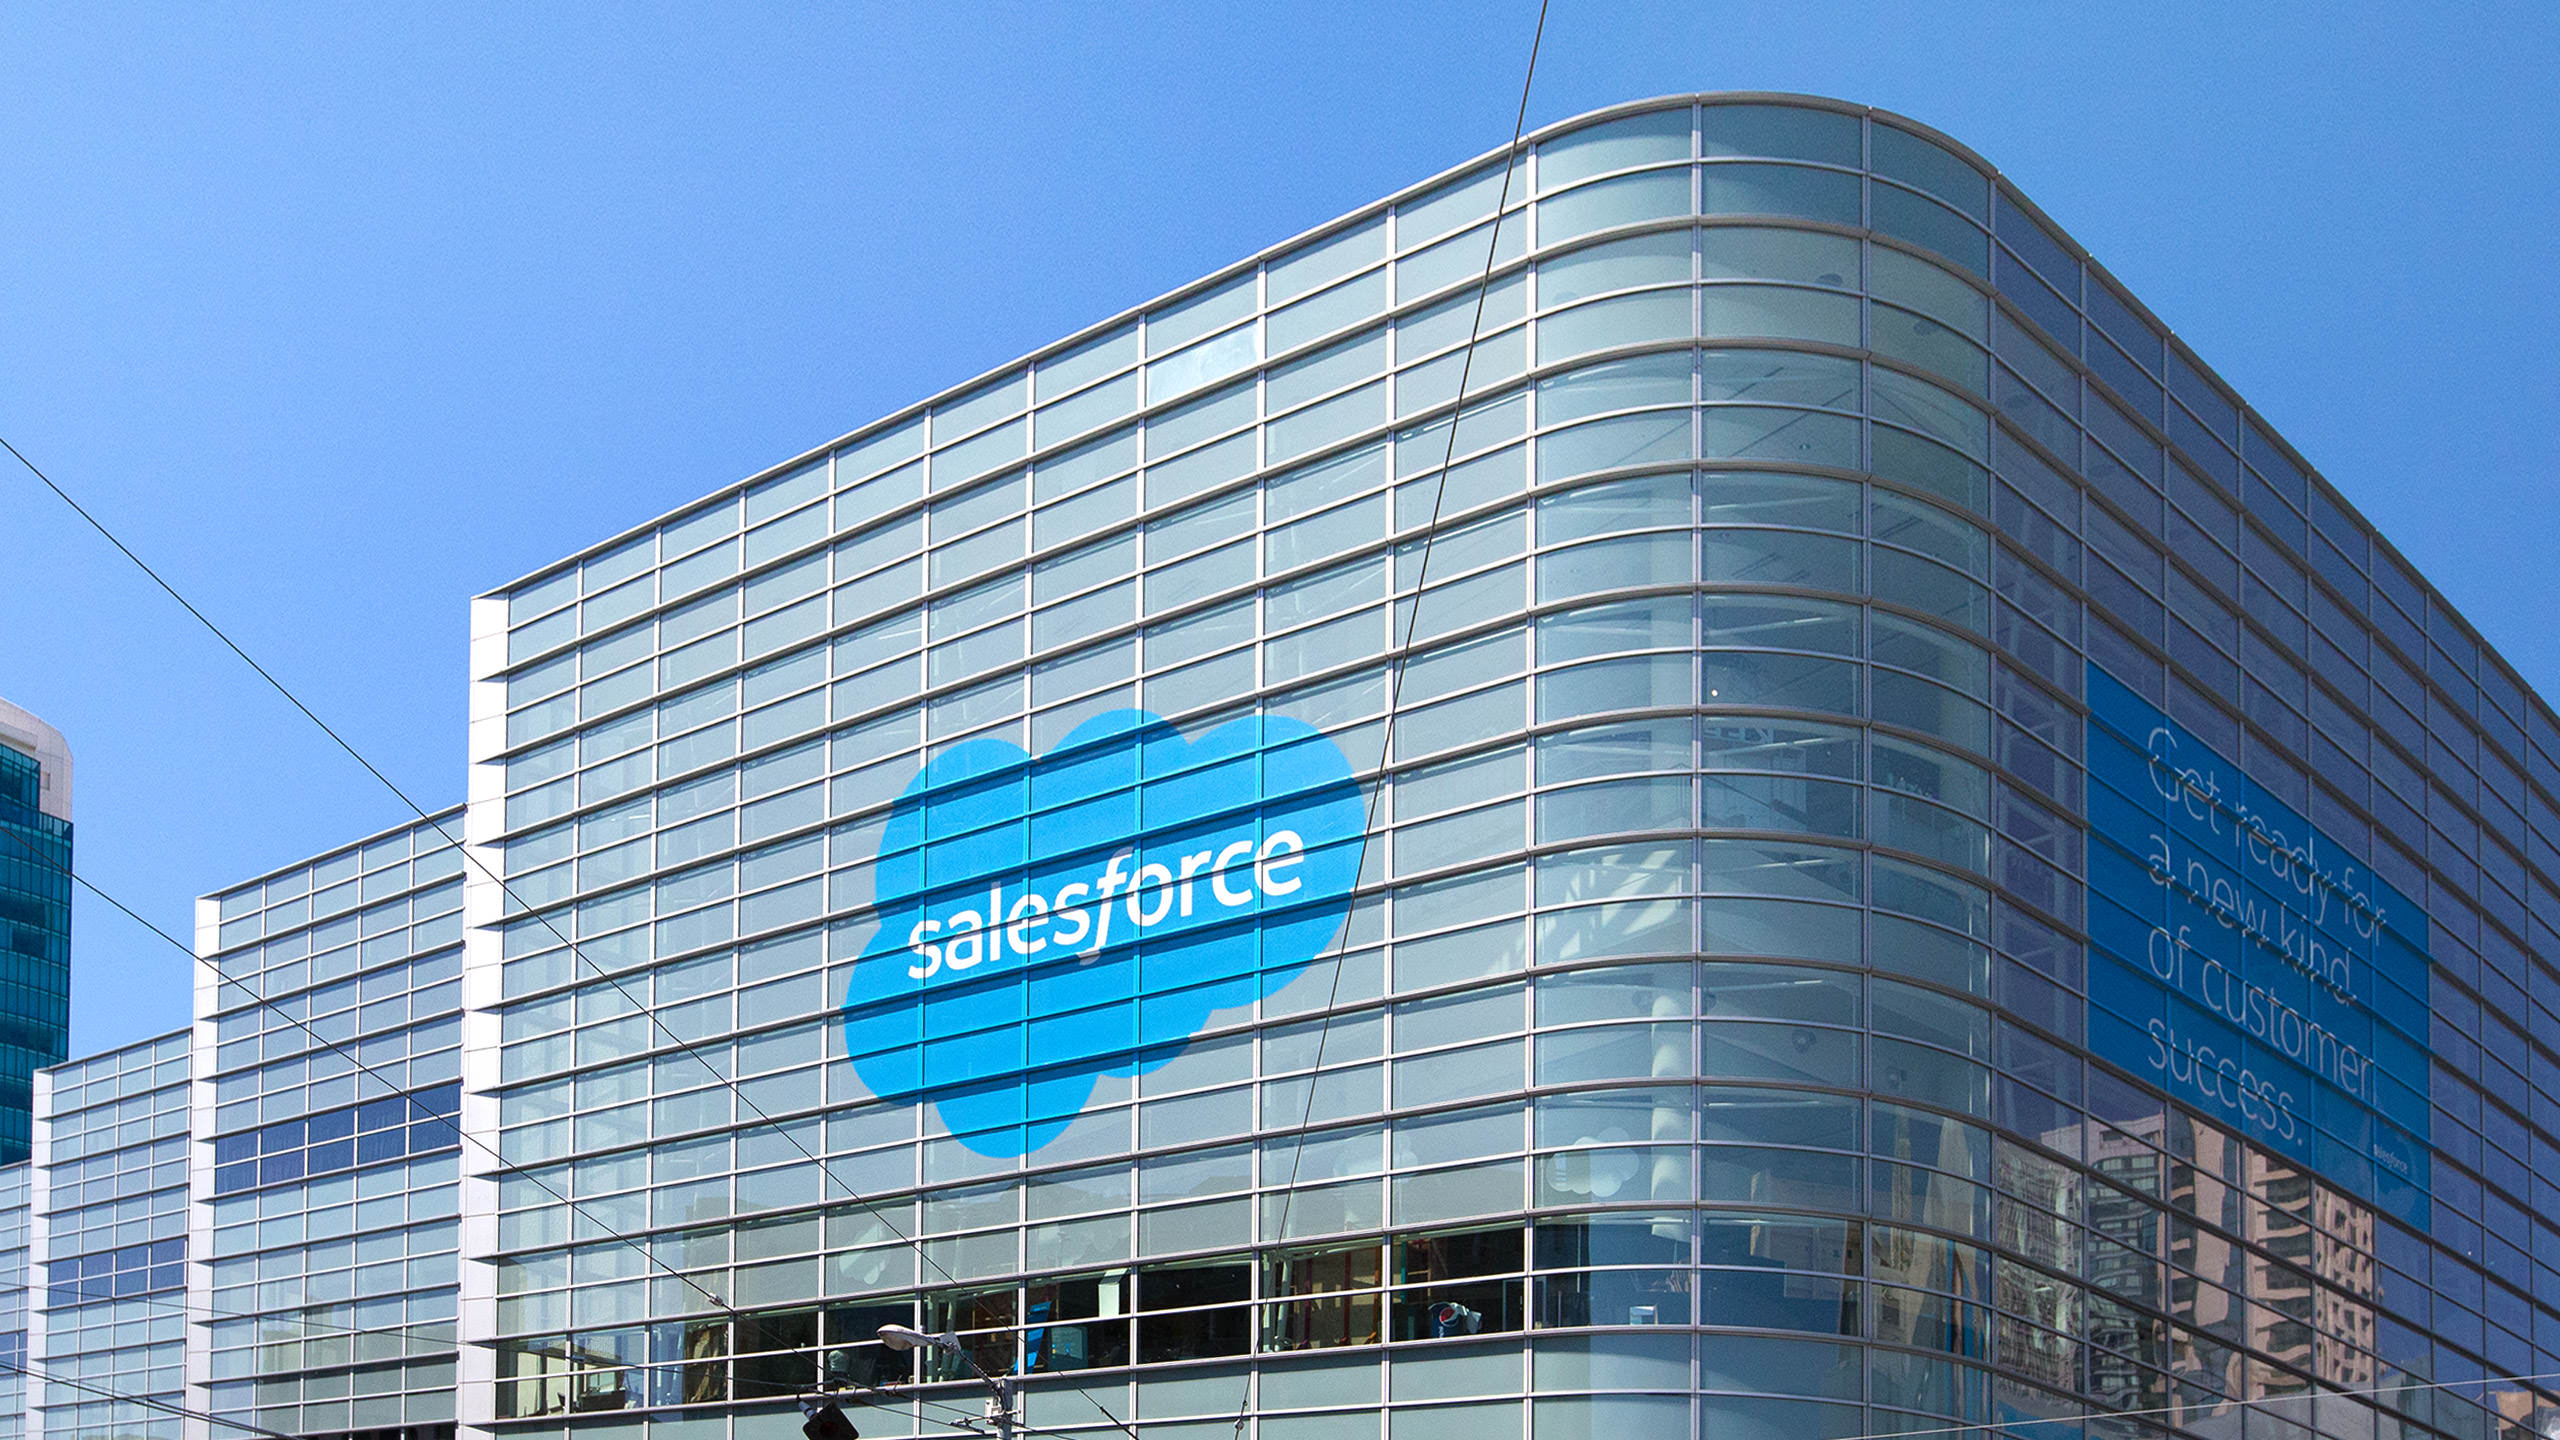 salesforce-brand-application-logo-signage-moscone